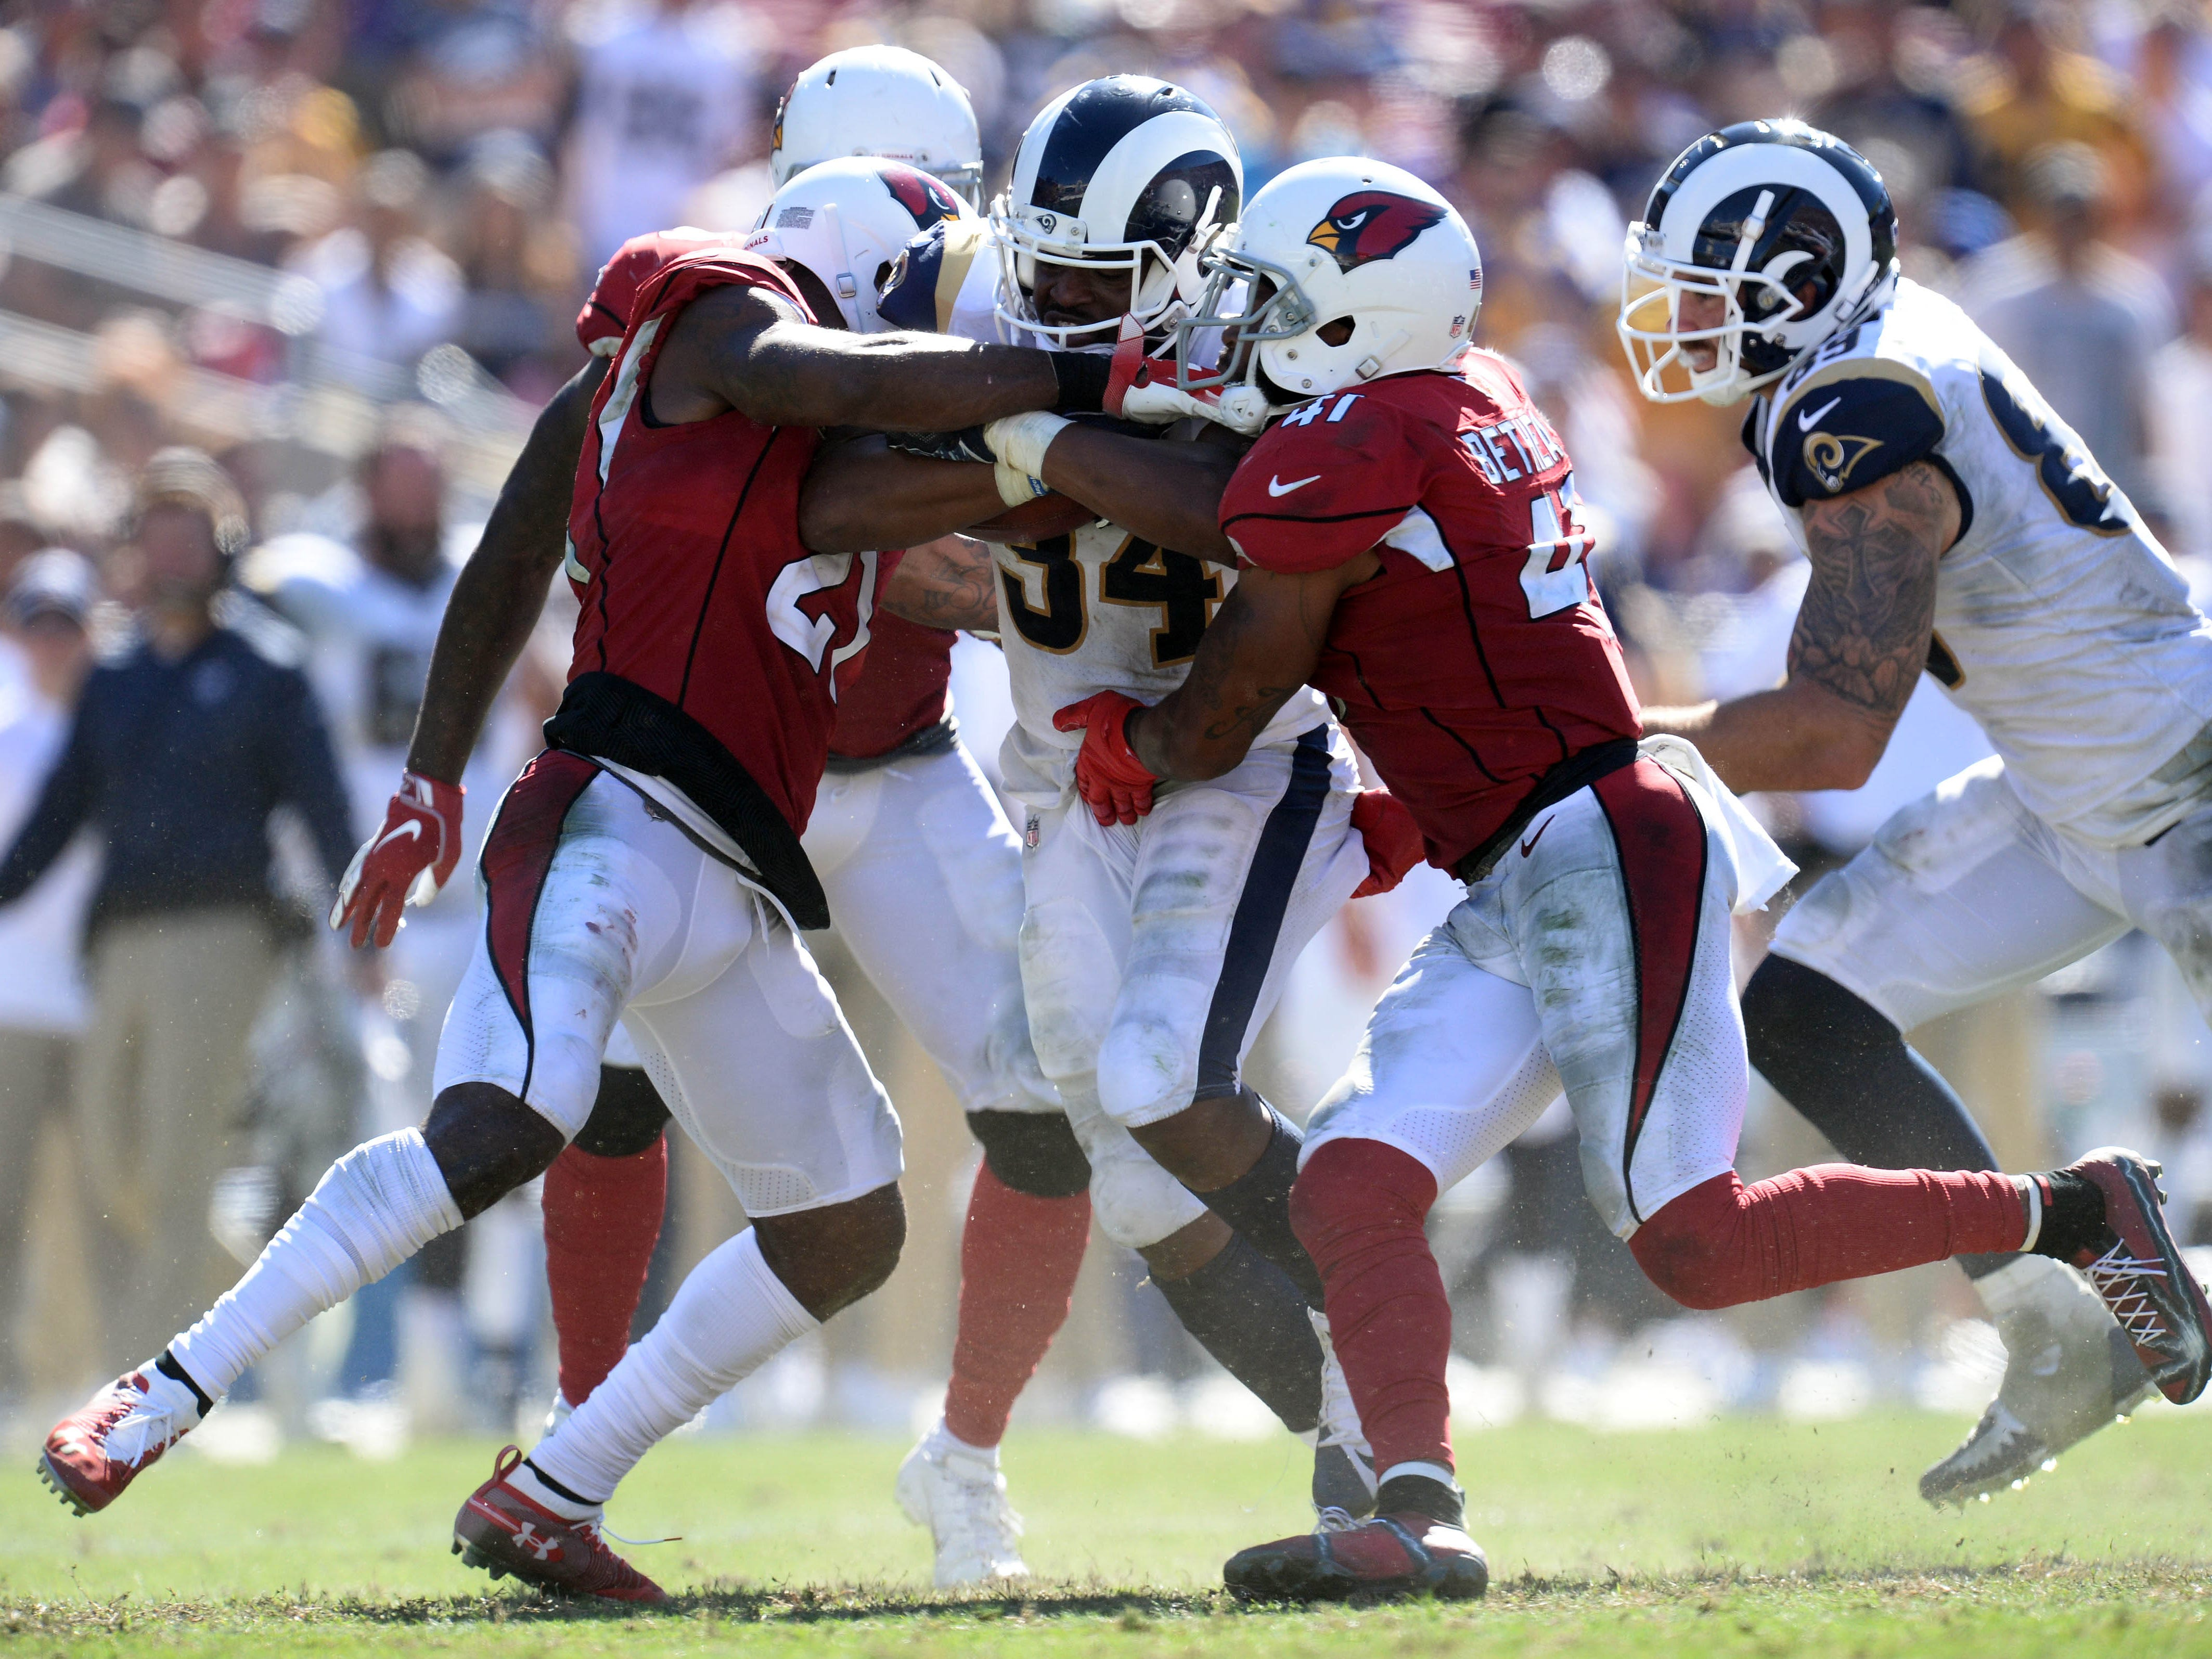 September 16, 2018; Los Angeles, CA, USA; Los Angeles Rams running back Malcolm Brown (34) runs the ball against the Arizona Cardinals during the second half at the Los Angeles Memorial Coliseum. Mandatory Credit: Gary A. Vasquez-USA TODAY Sports